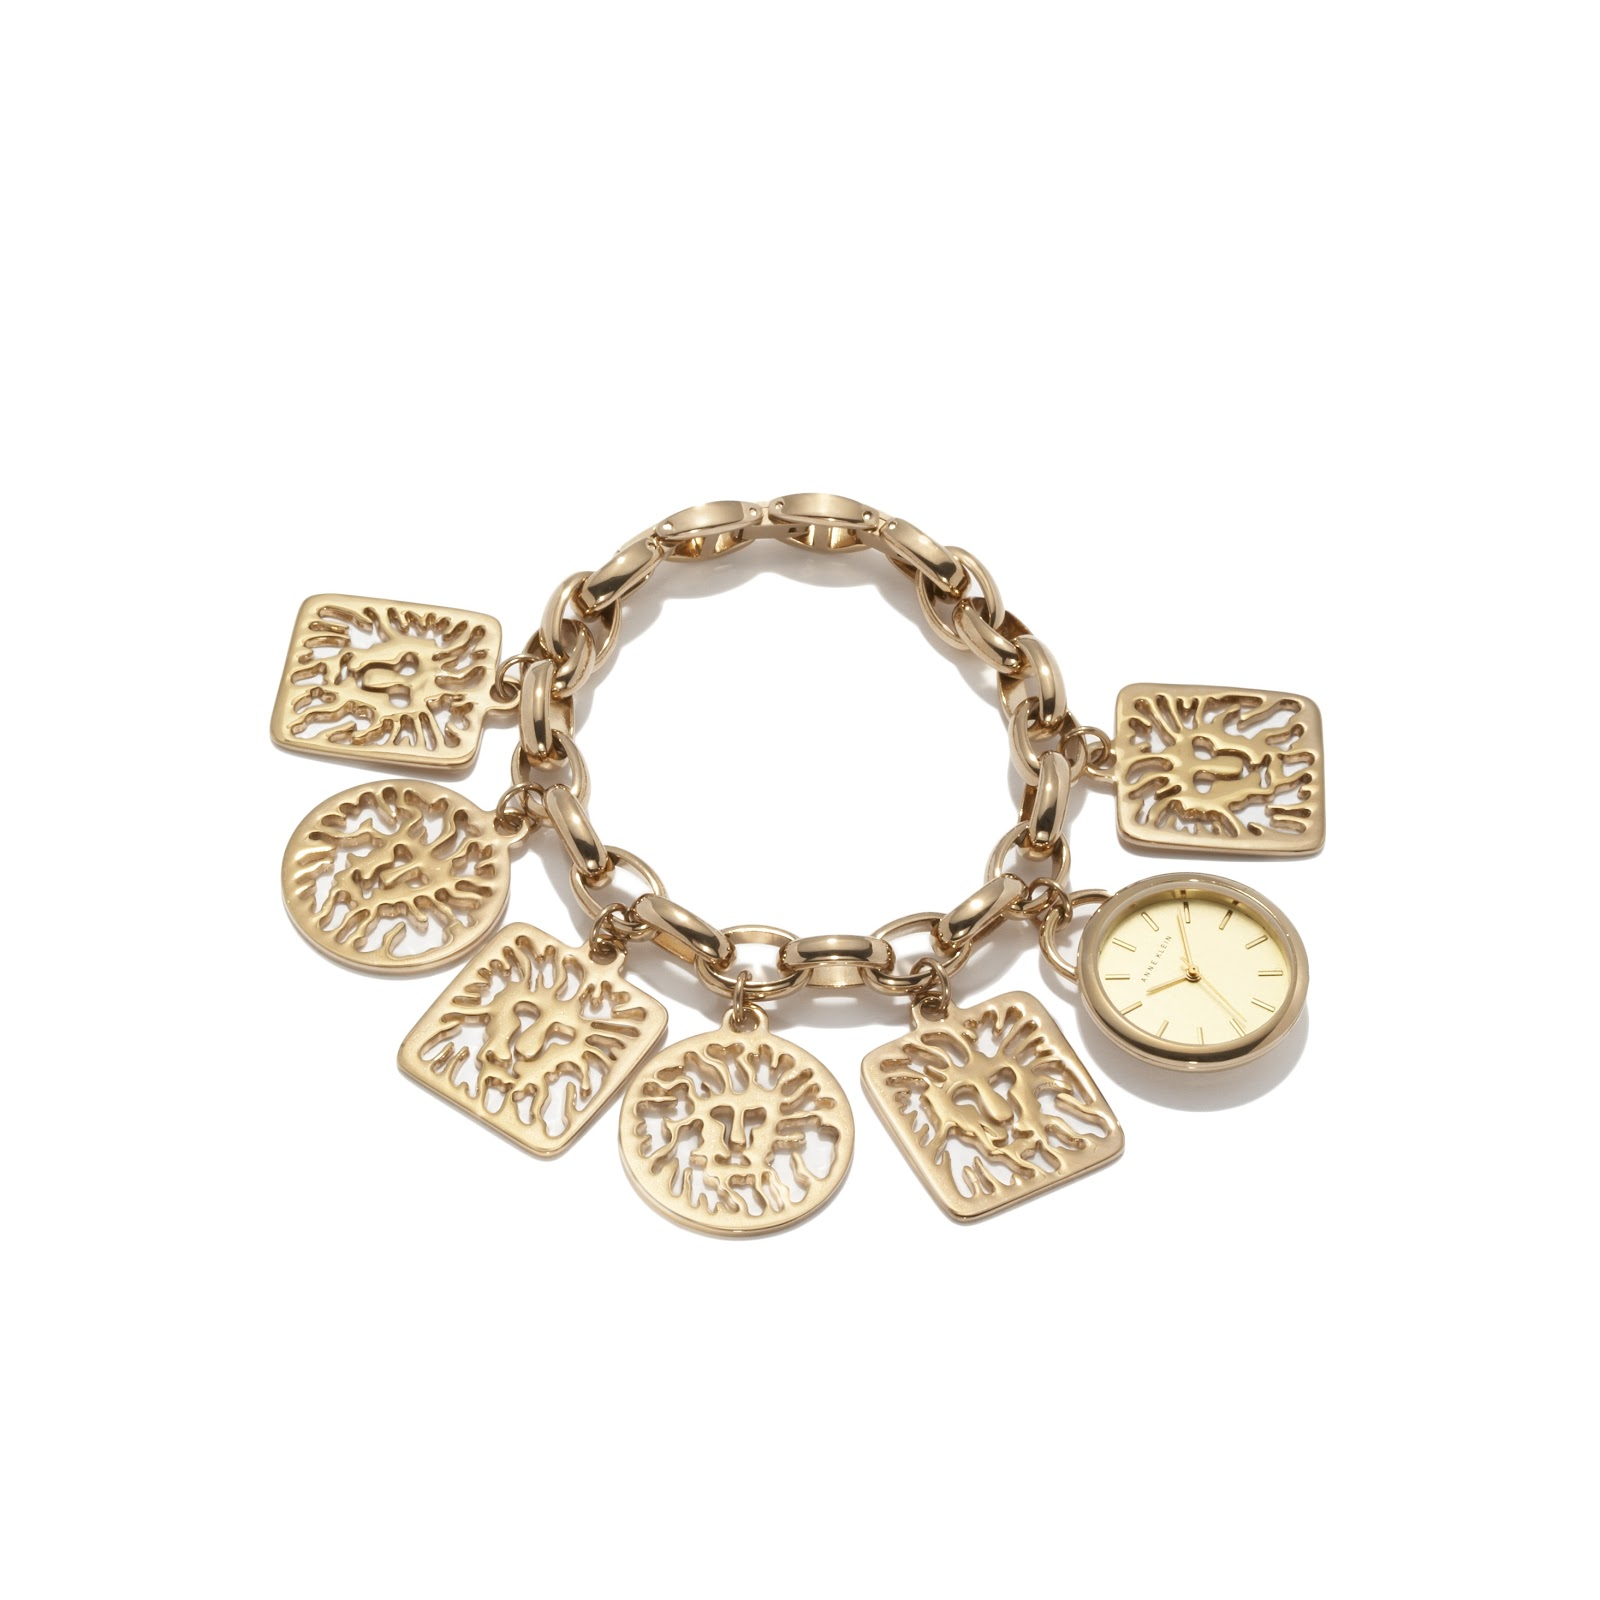 The Lion Head Logo Takes Center Stage On This Whimsical Gold Tone Charm Bracelet Watch Six Large Dangling Square And Round Charms With Hang